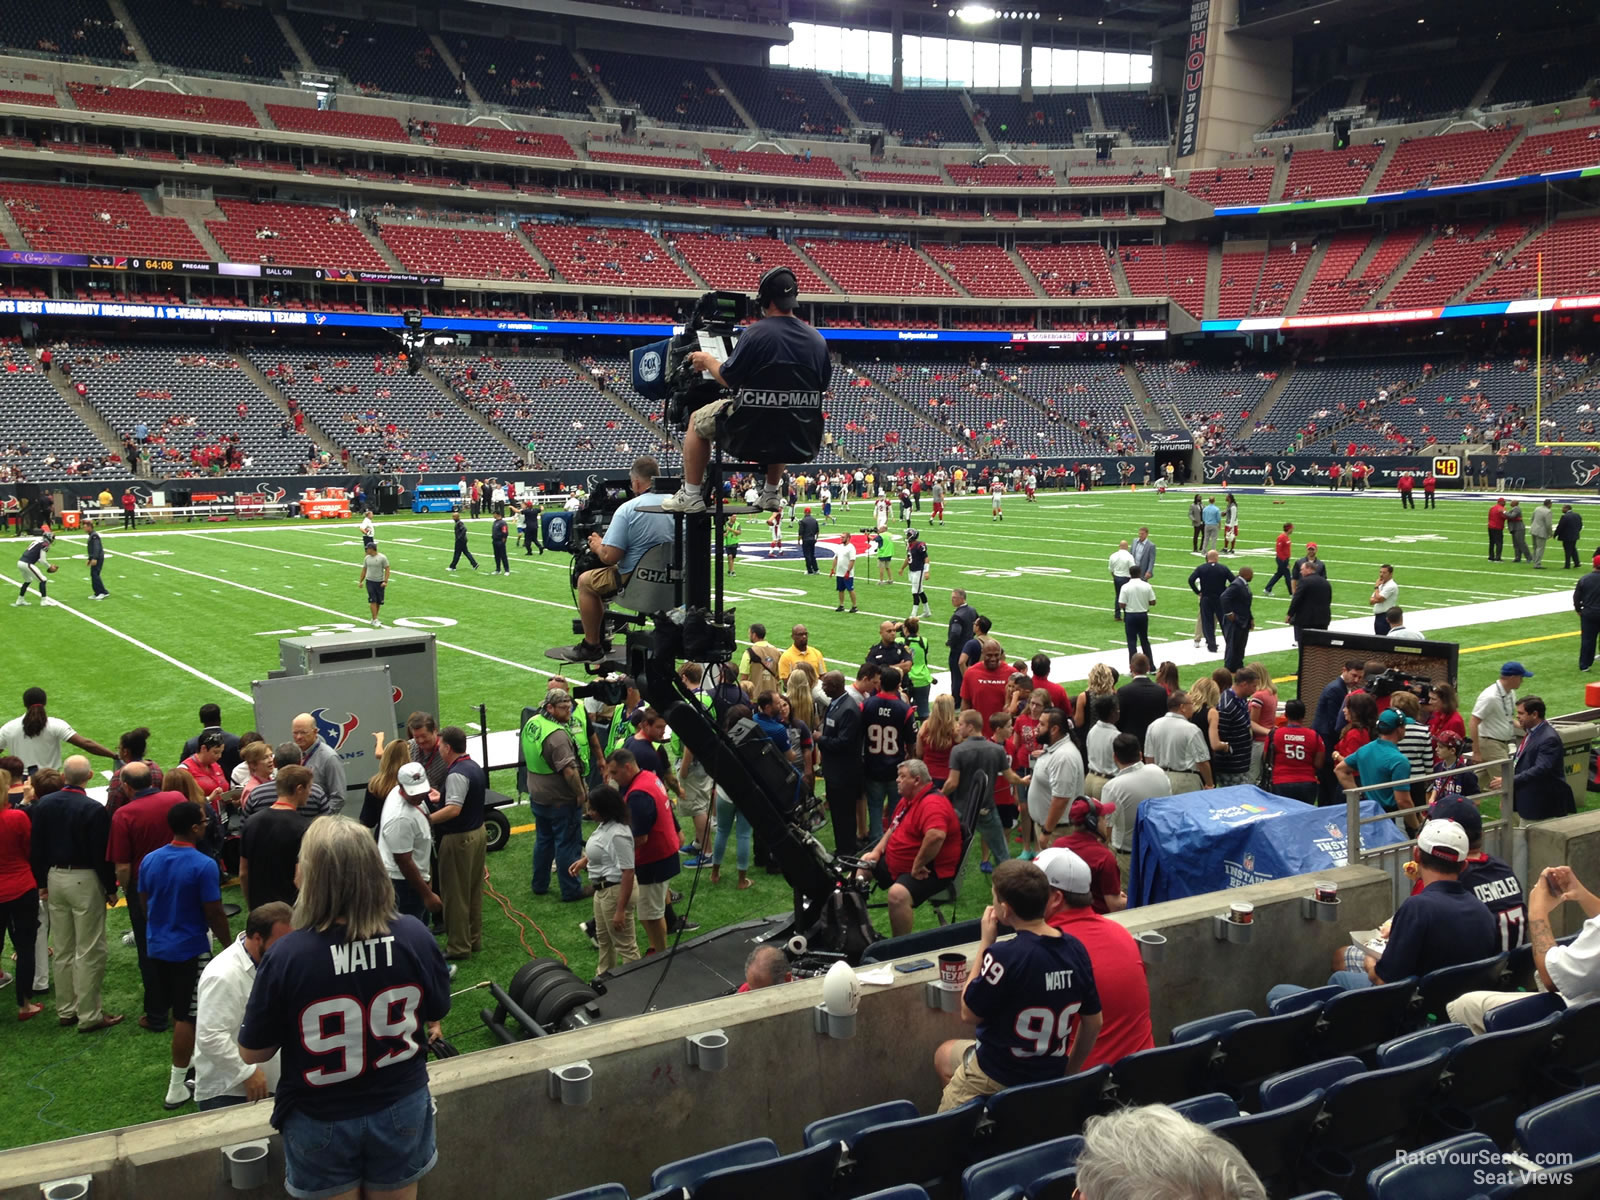 Houston Texans Seat View for NRG Stadium Section 109, Row C